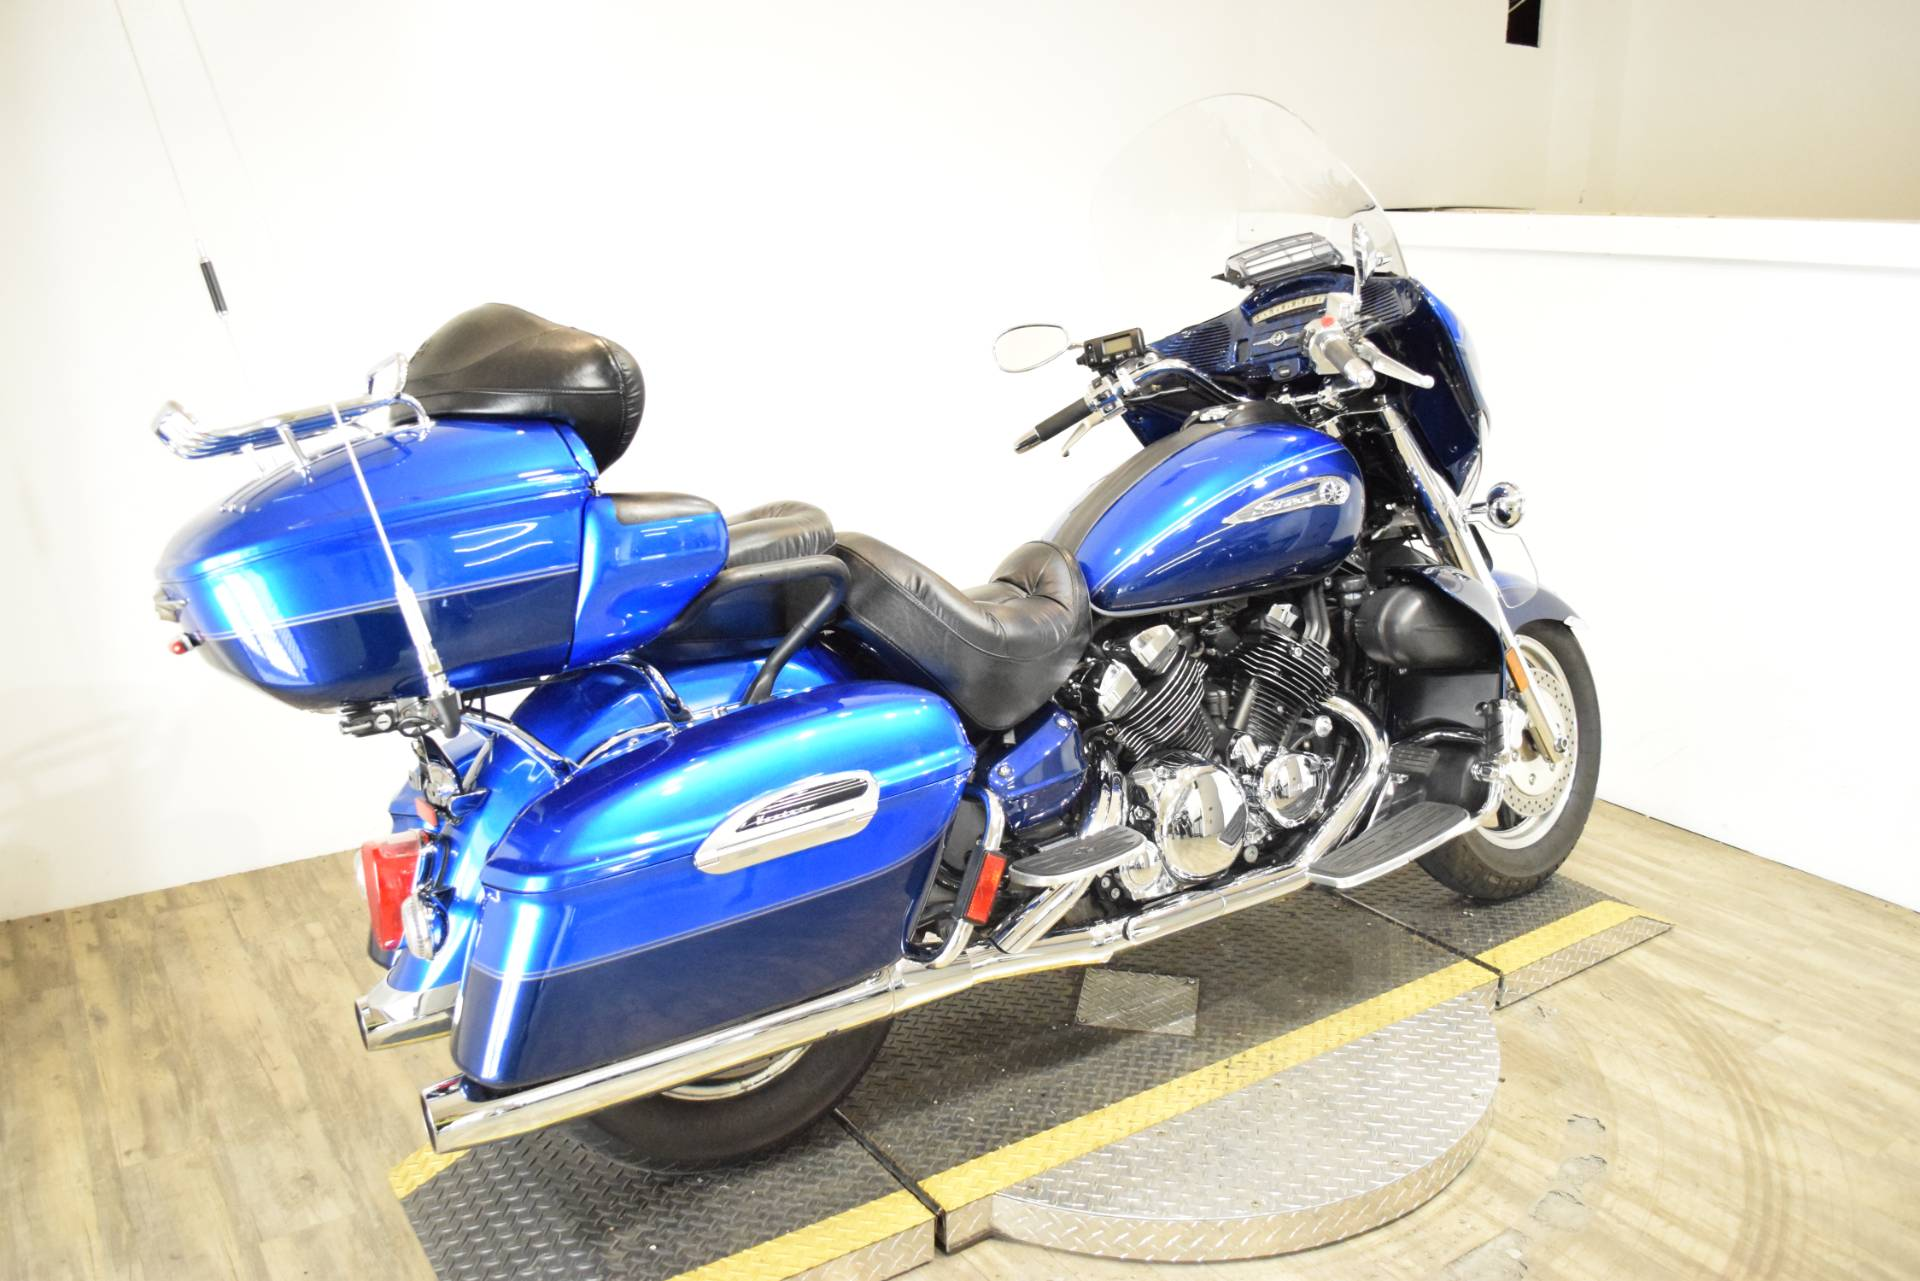 2011 Yamaha Royal Star Venture S in Wauconda, Illinois - Photo 9